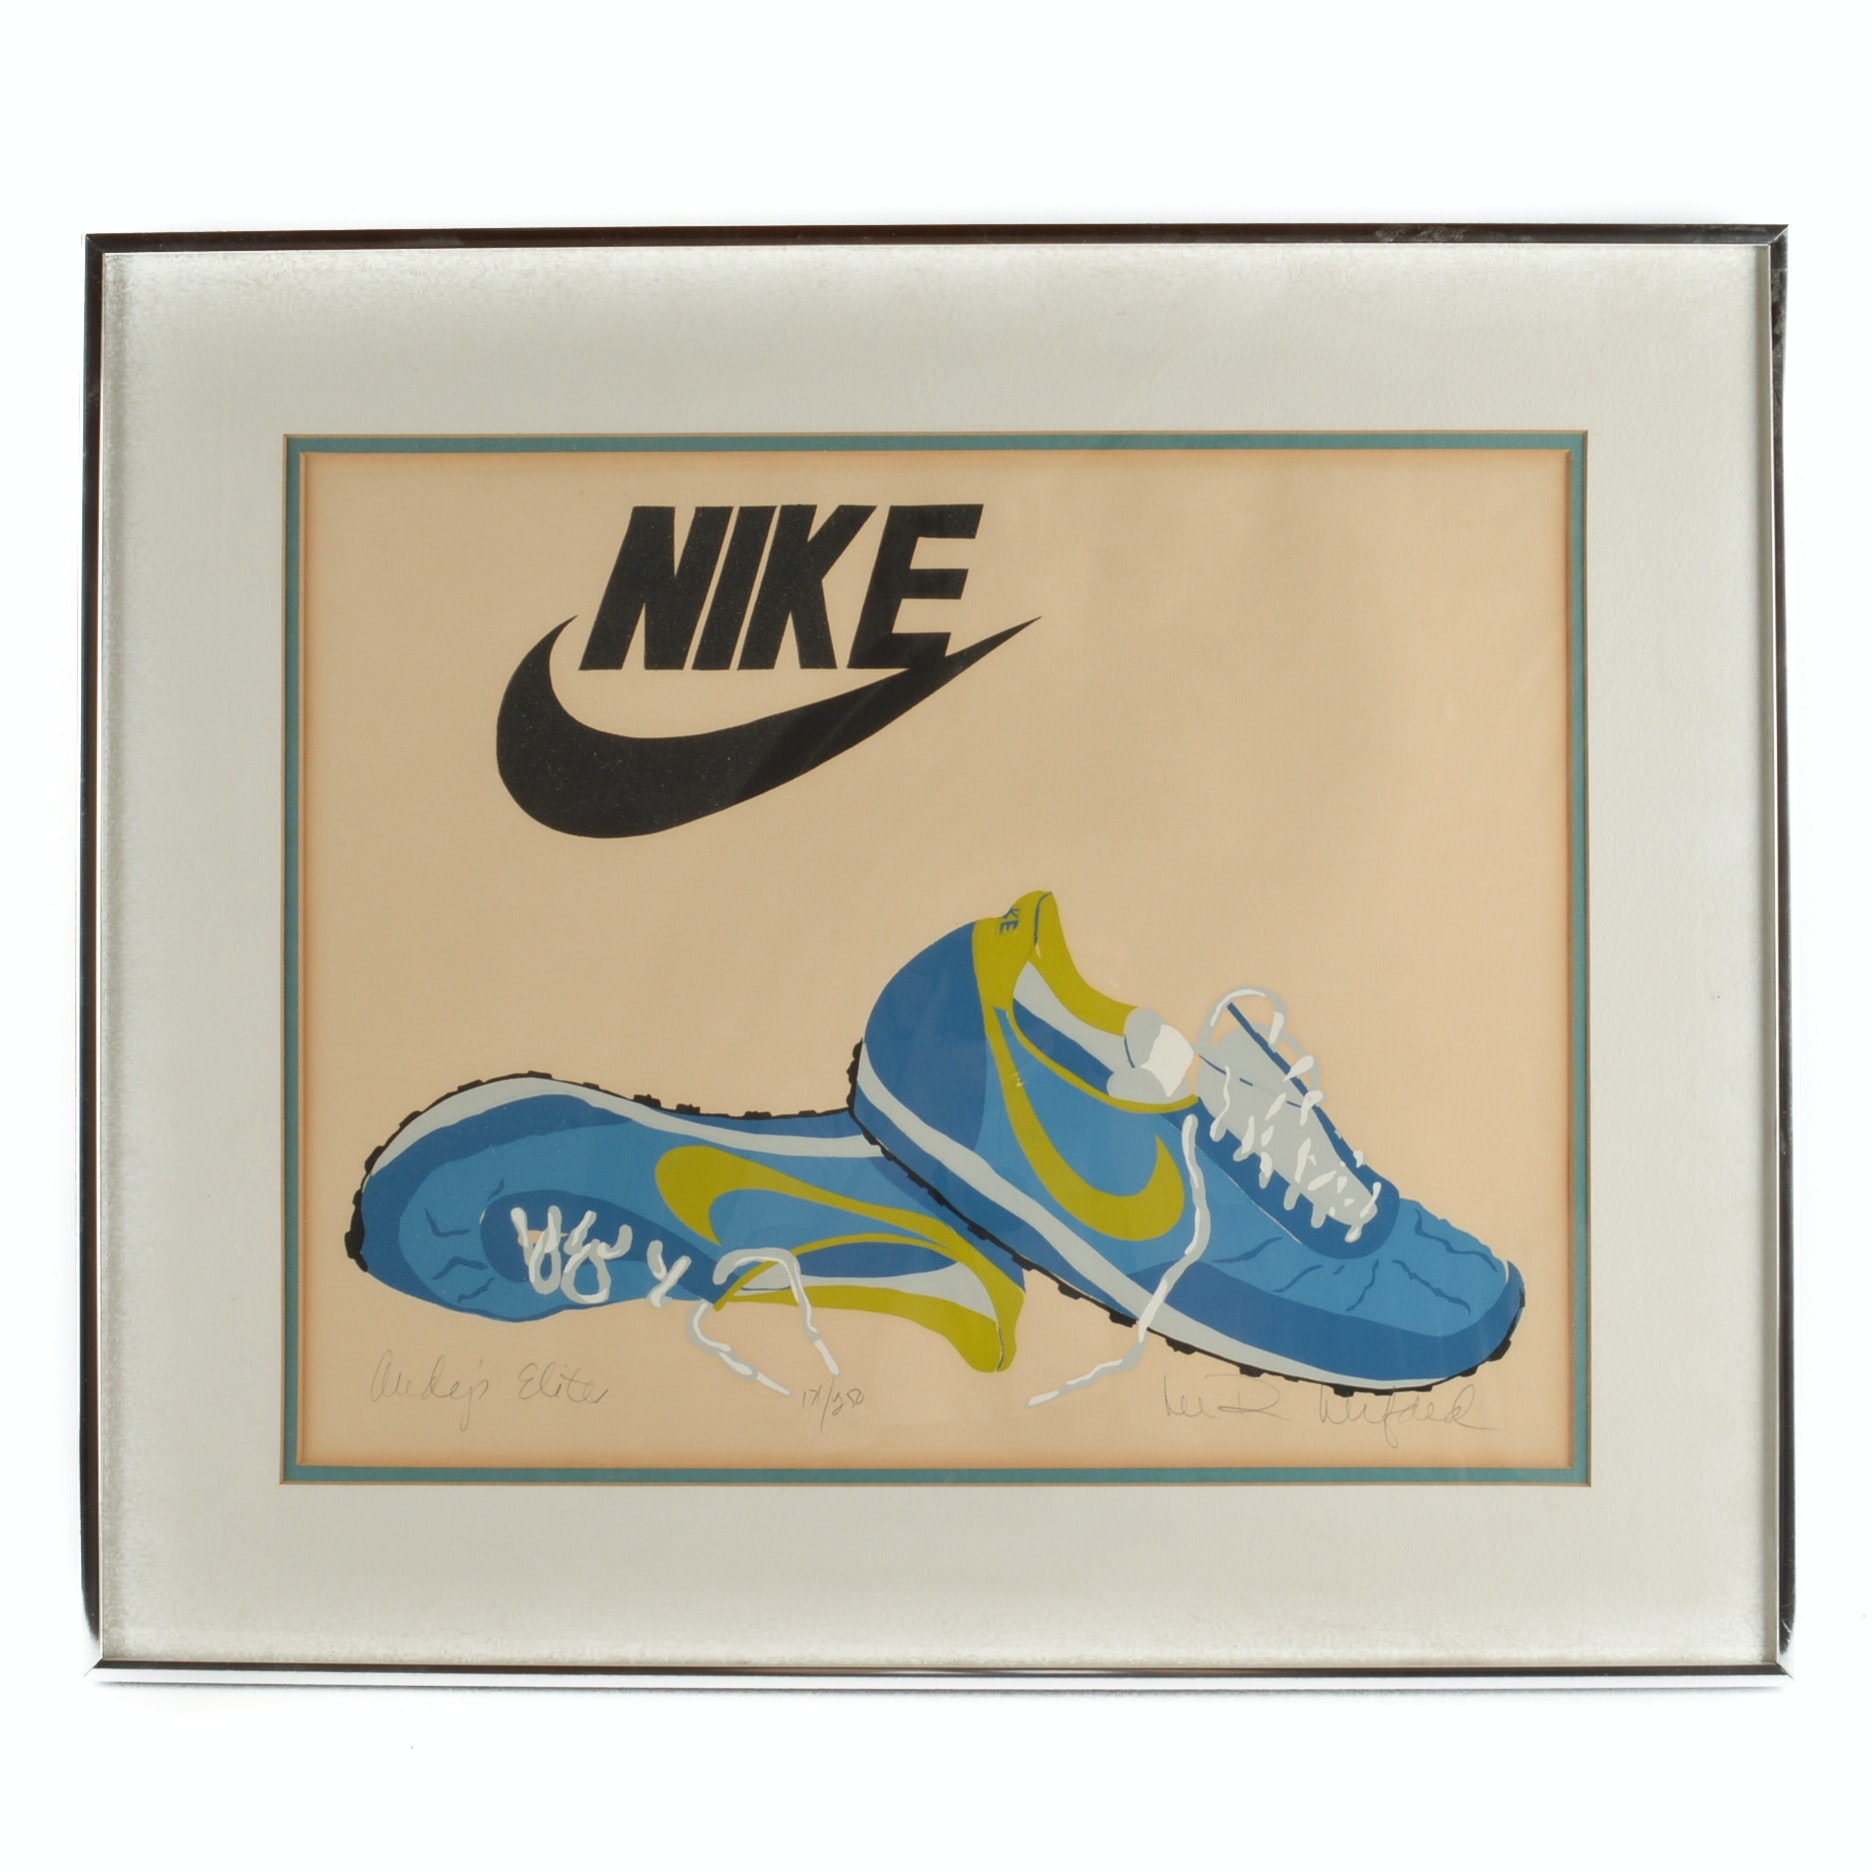 Lee R. Lerfald Limited Edition Nike Serigraph on Paper